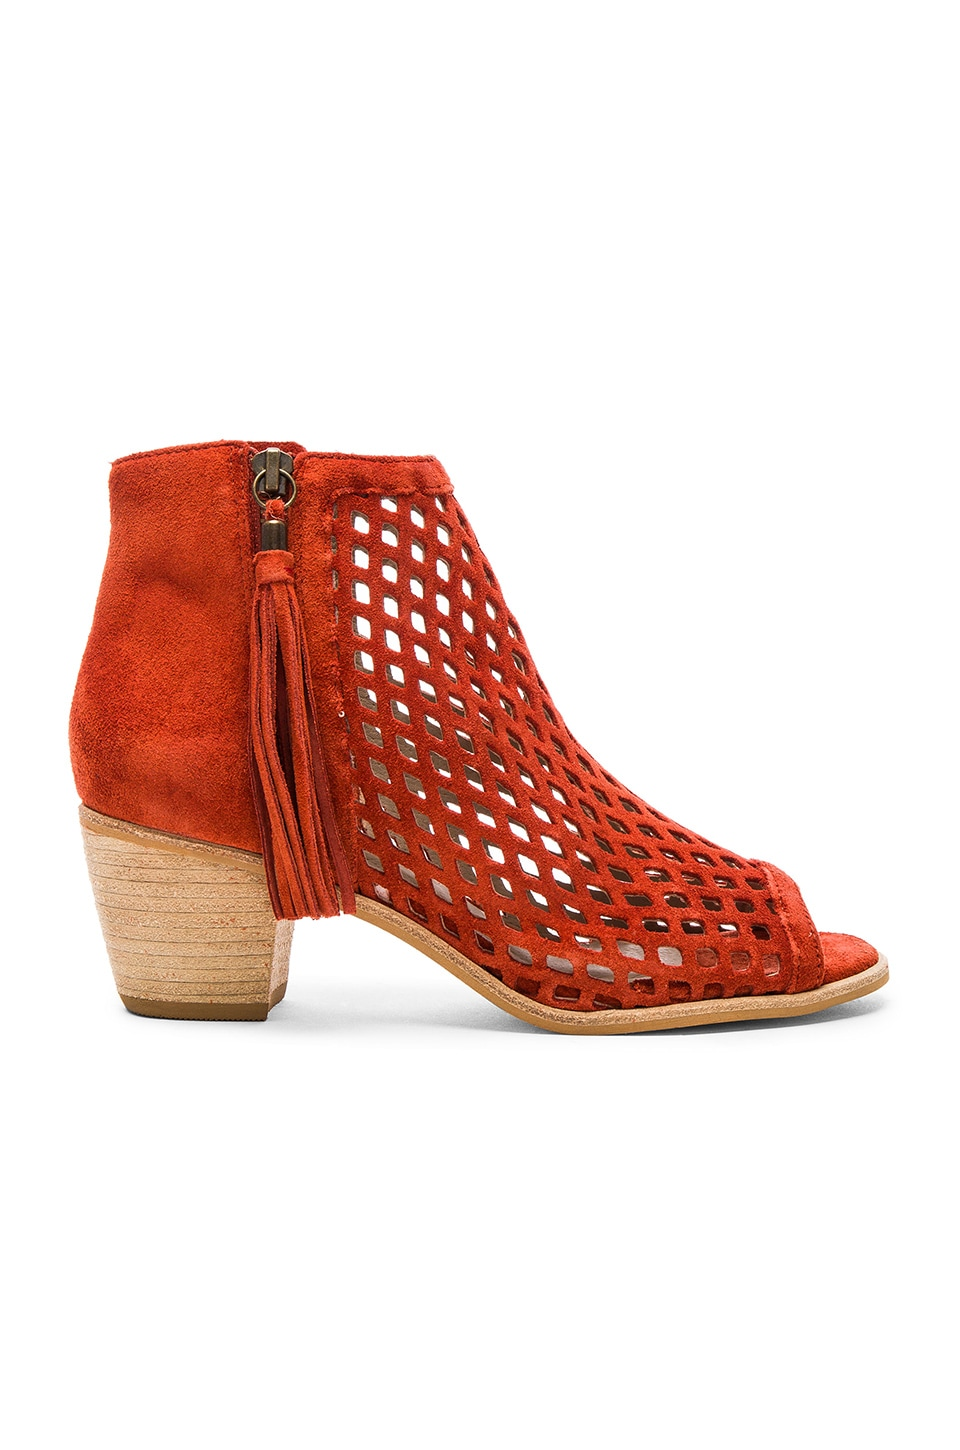 Matisse Indie Booties in Rust